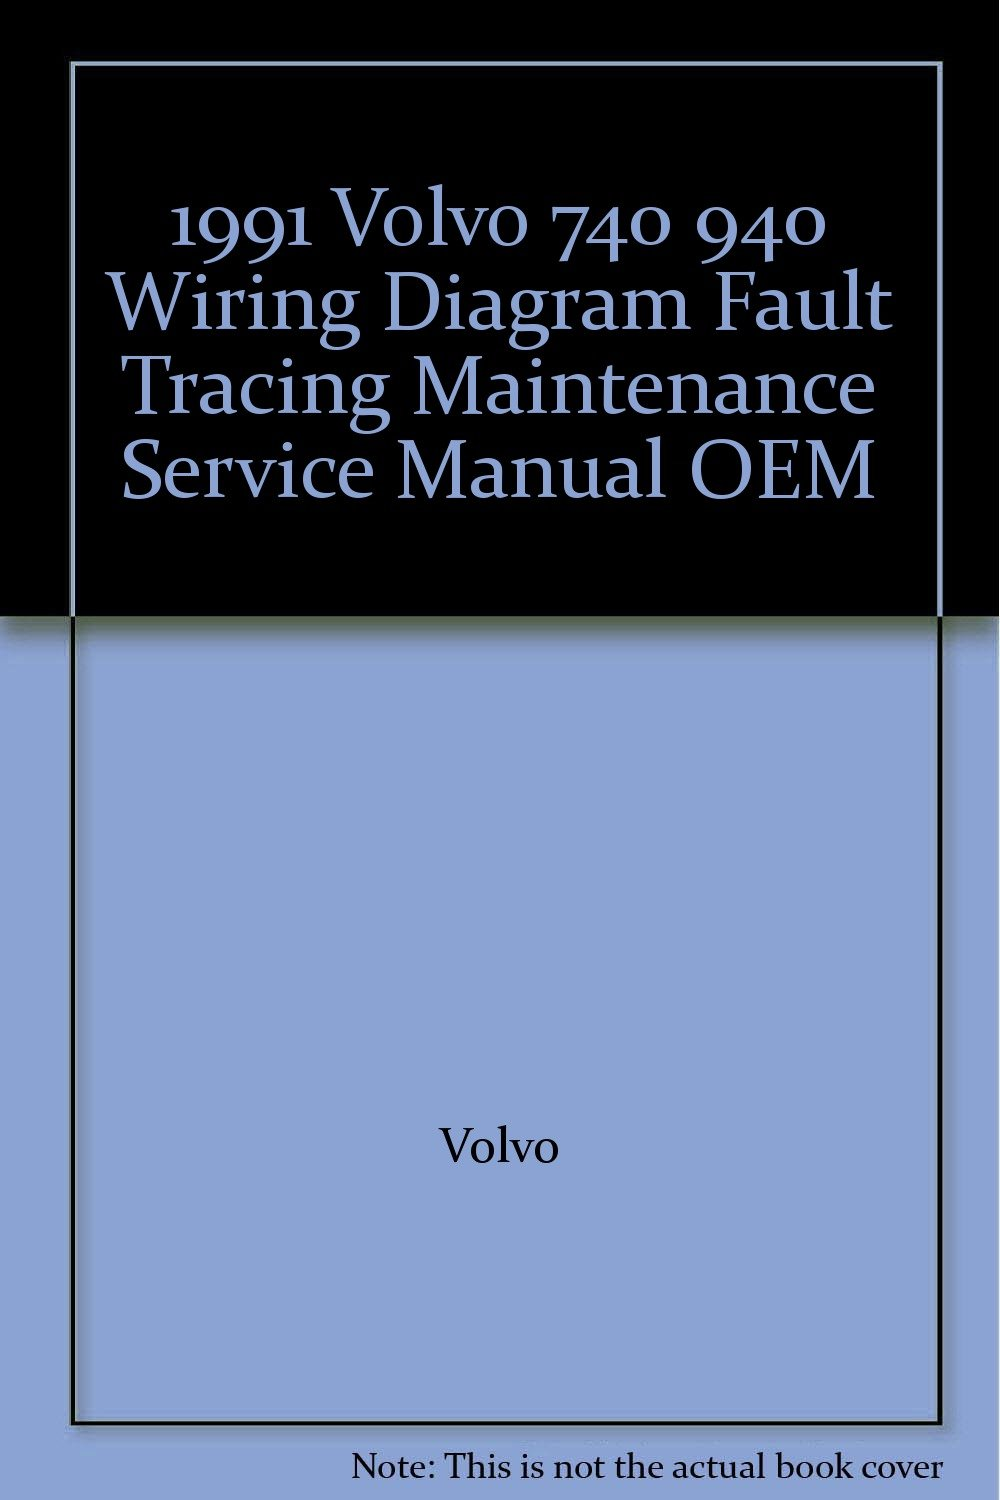 1991 volvo 740 940 wiring diagram fault tracing maintenance service JCB 940 Wiring Schematics 1991 volvo 740 940 wiring diagram fault tracing maintenance service manual oem paperback \u2013 1991